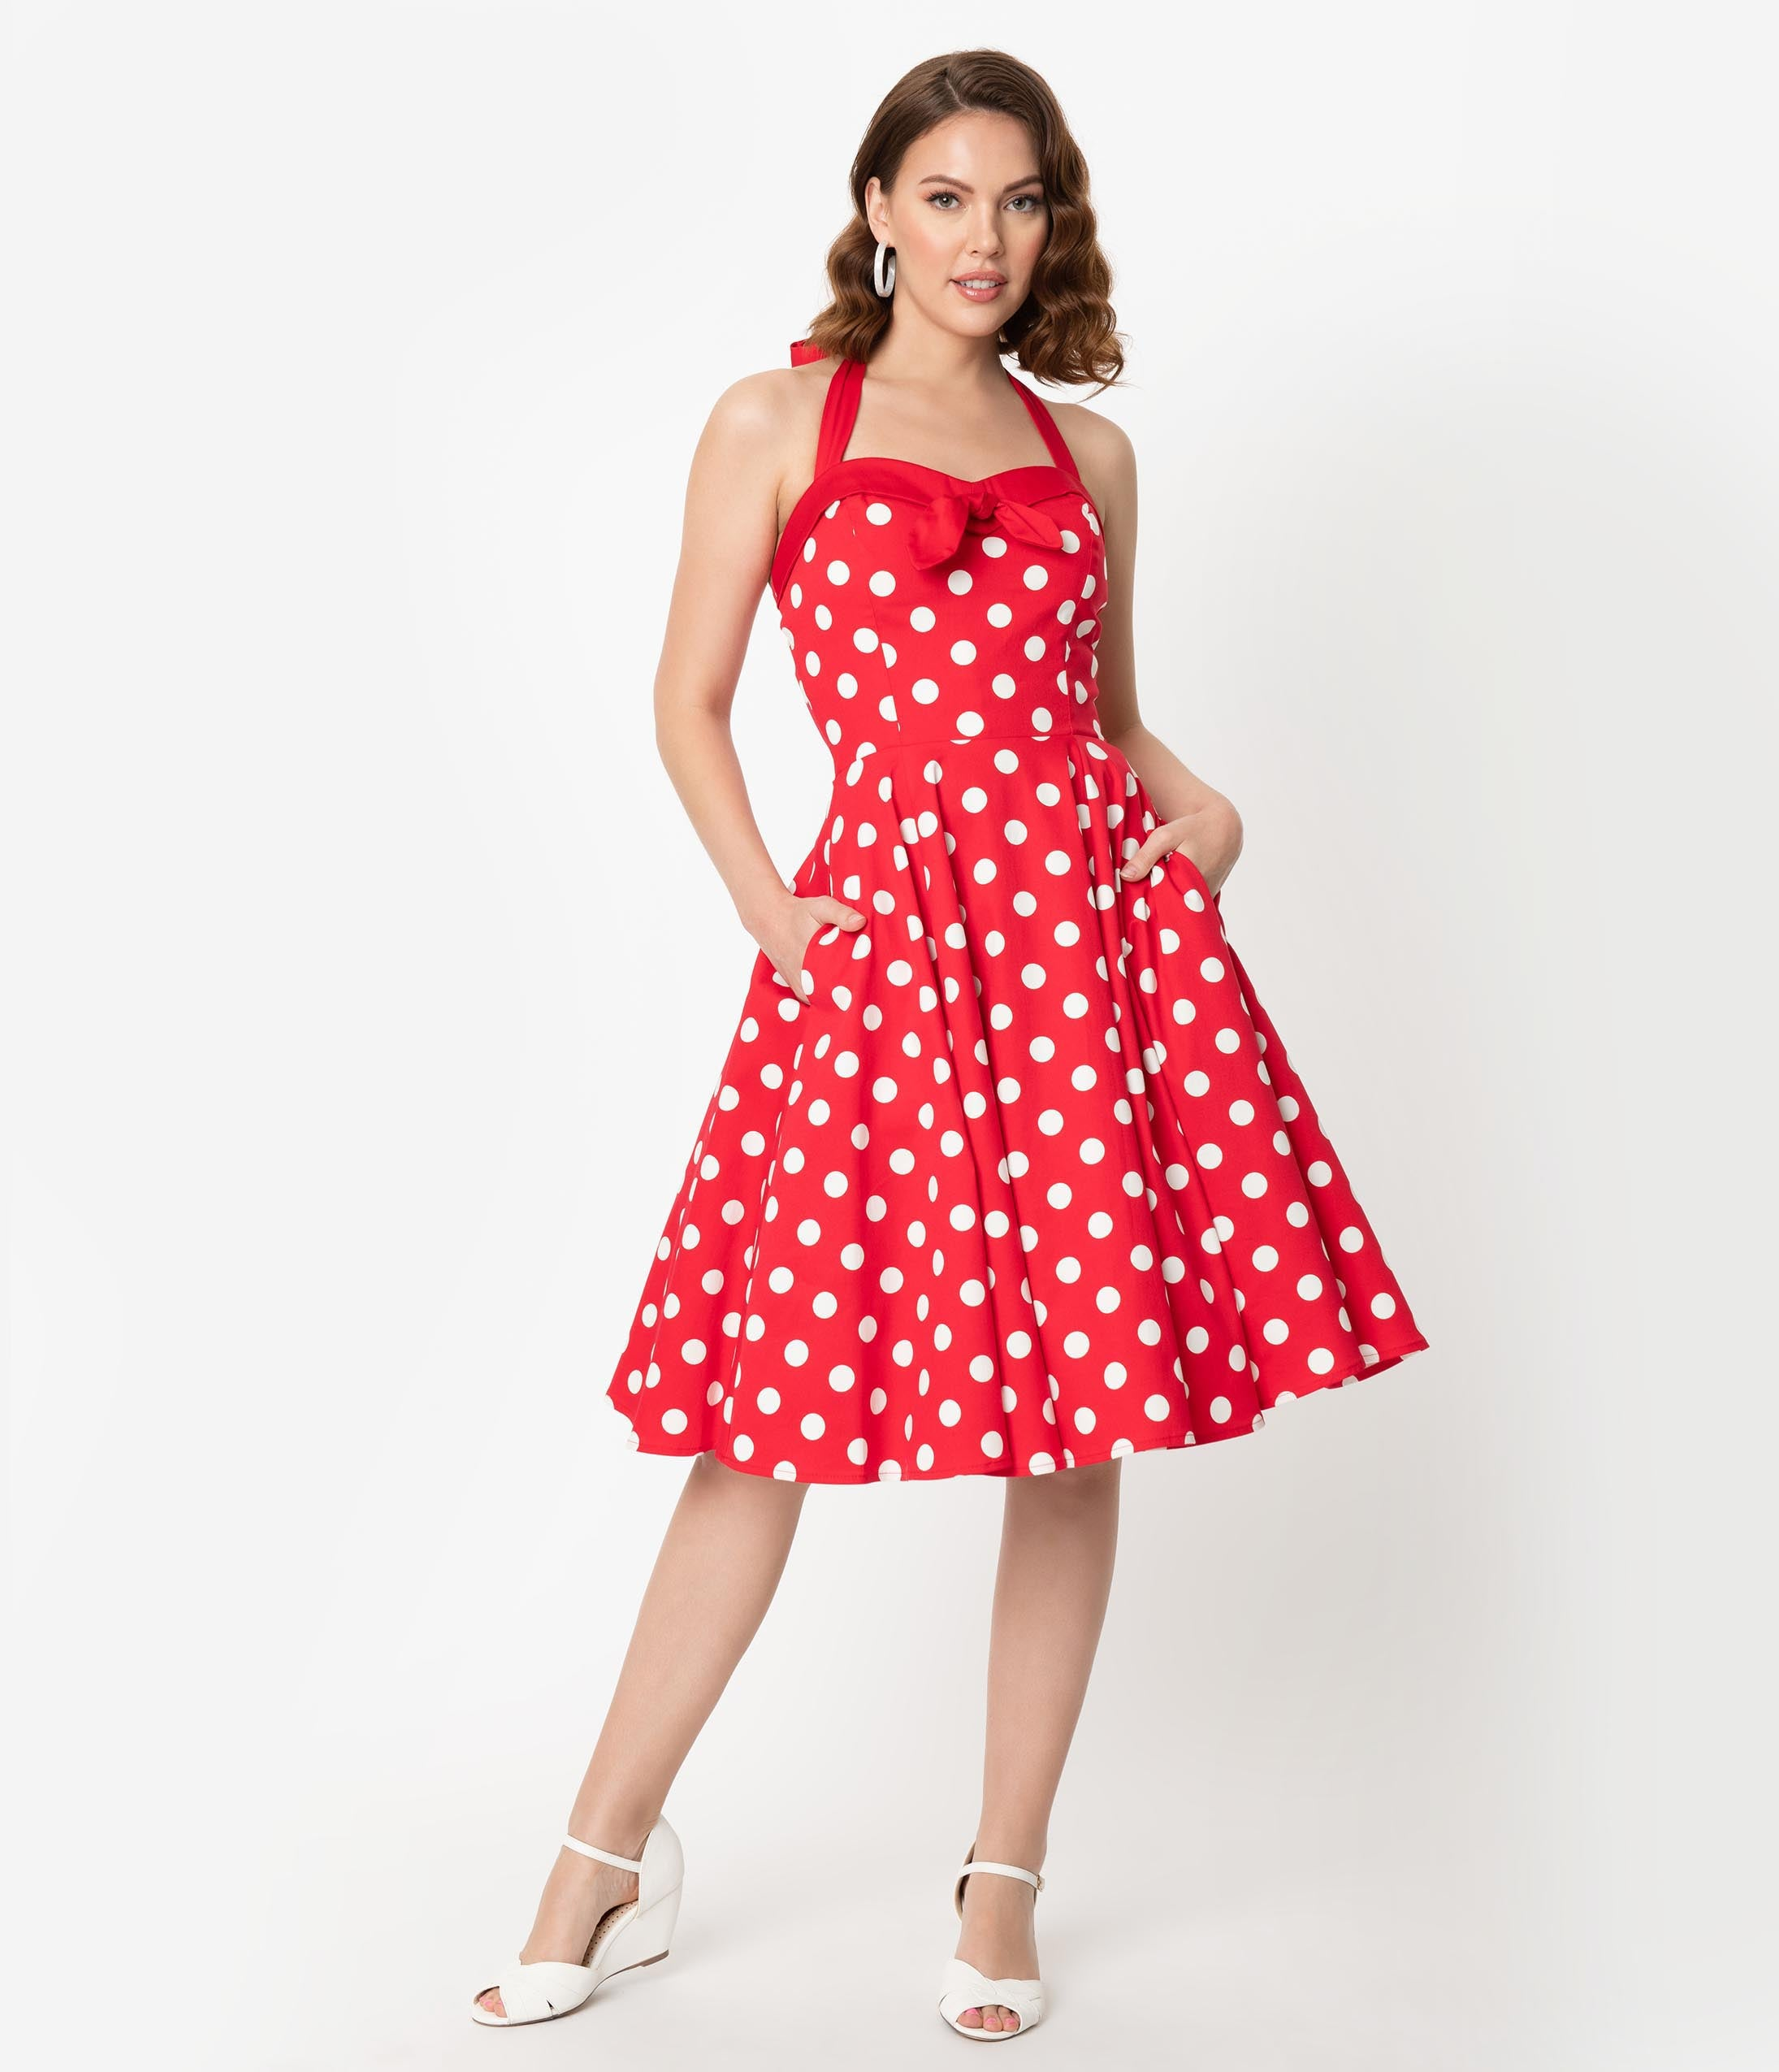 8f53b66104ac Vintage Polka Dot Dresses – 50s Spotty and Ditsy Prints Vintage Style Red  White Polka Dot